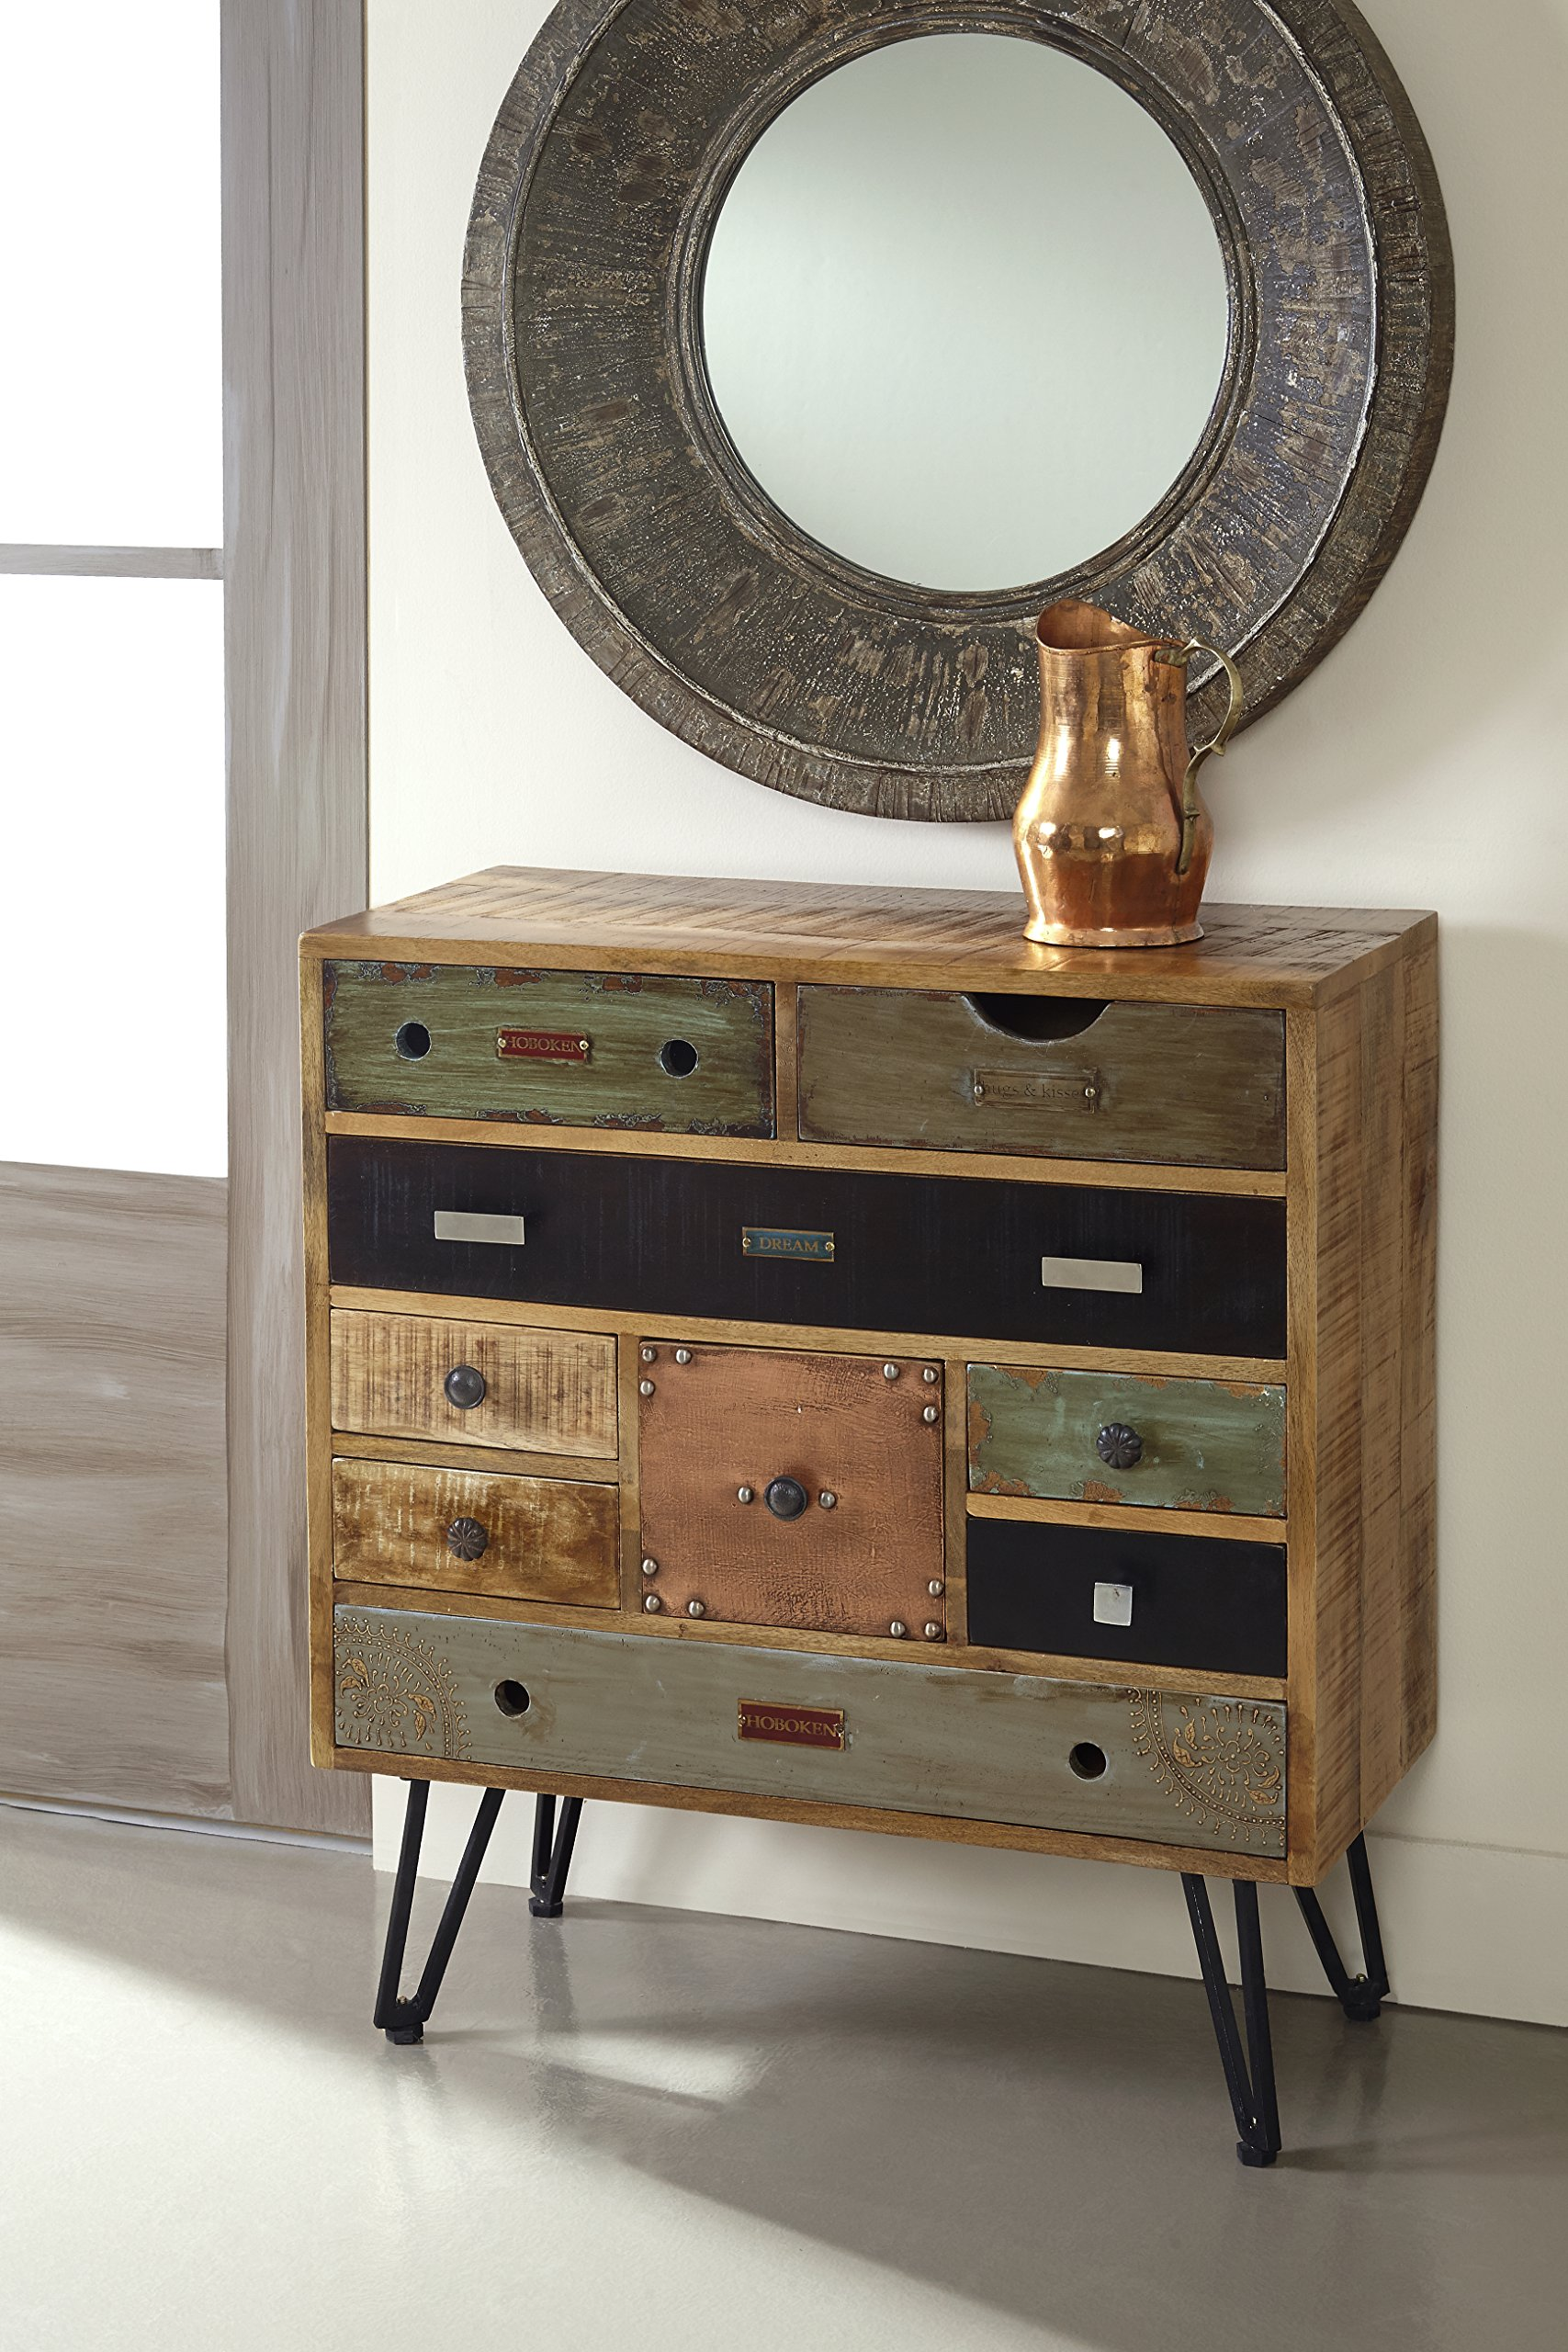 Treasure Trove Accents Nine Drawer Chest, 30-Inch, Multicolor - Lots of storage as well as pops of color that will add personality to any space Each drawer has a simple metal knob that does not distract from the design Overall dimension 29.5 Wide x 13.75 Deep x 32 High - dressers-bedroom-furniture, bedroom-furniture, bedroom - 91S51fYE9TL -